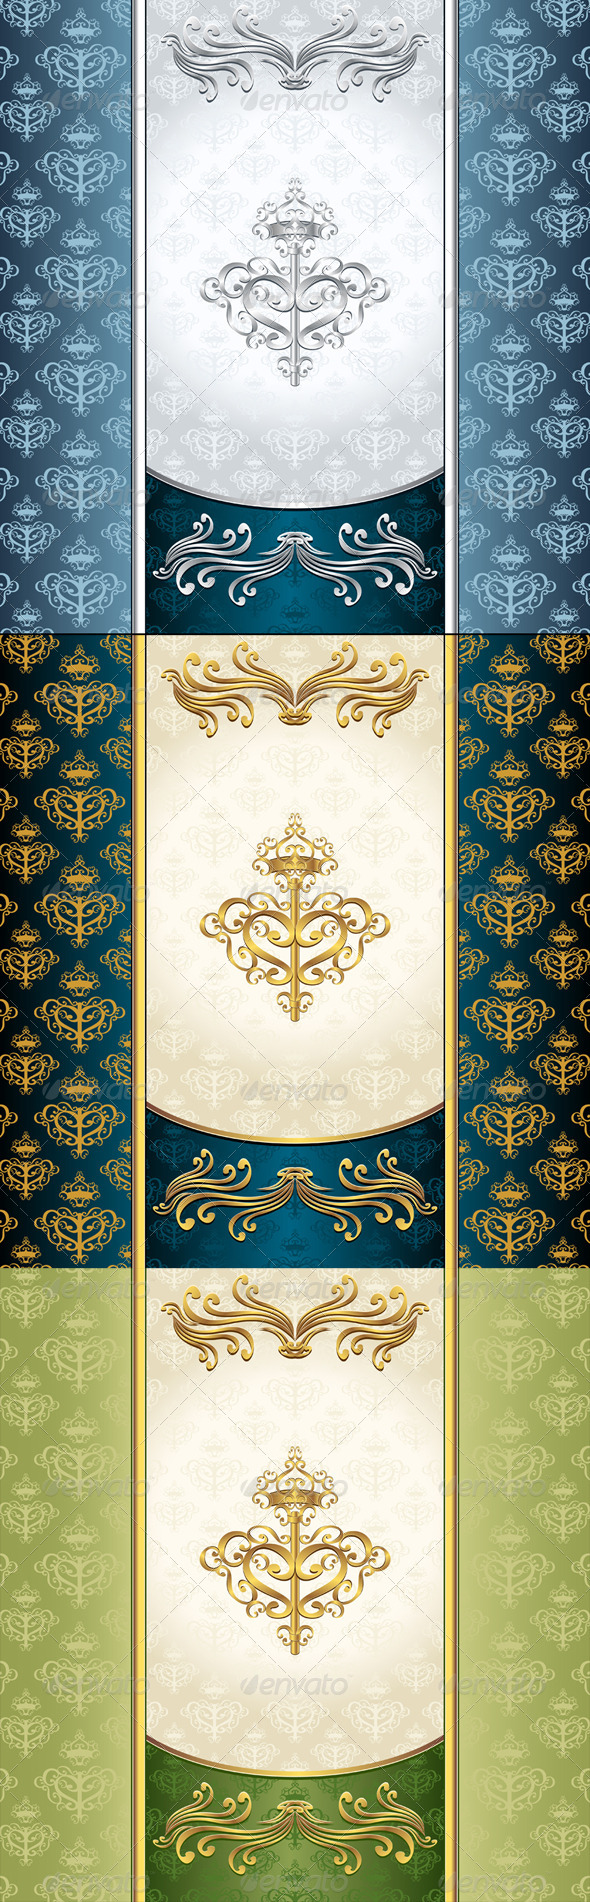 Royal Victorian Background with Seamless Pattern - Decorative Vectors